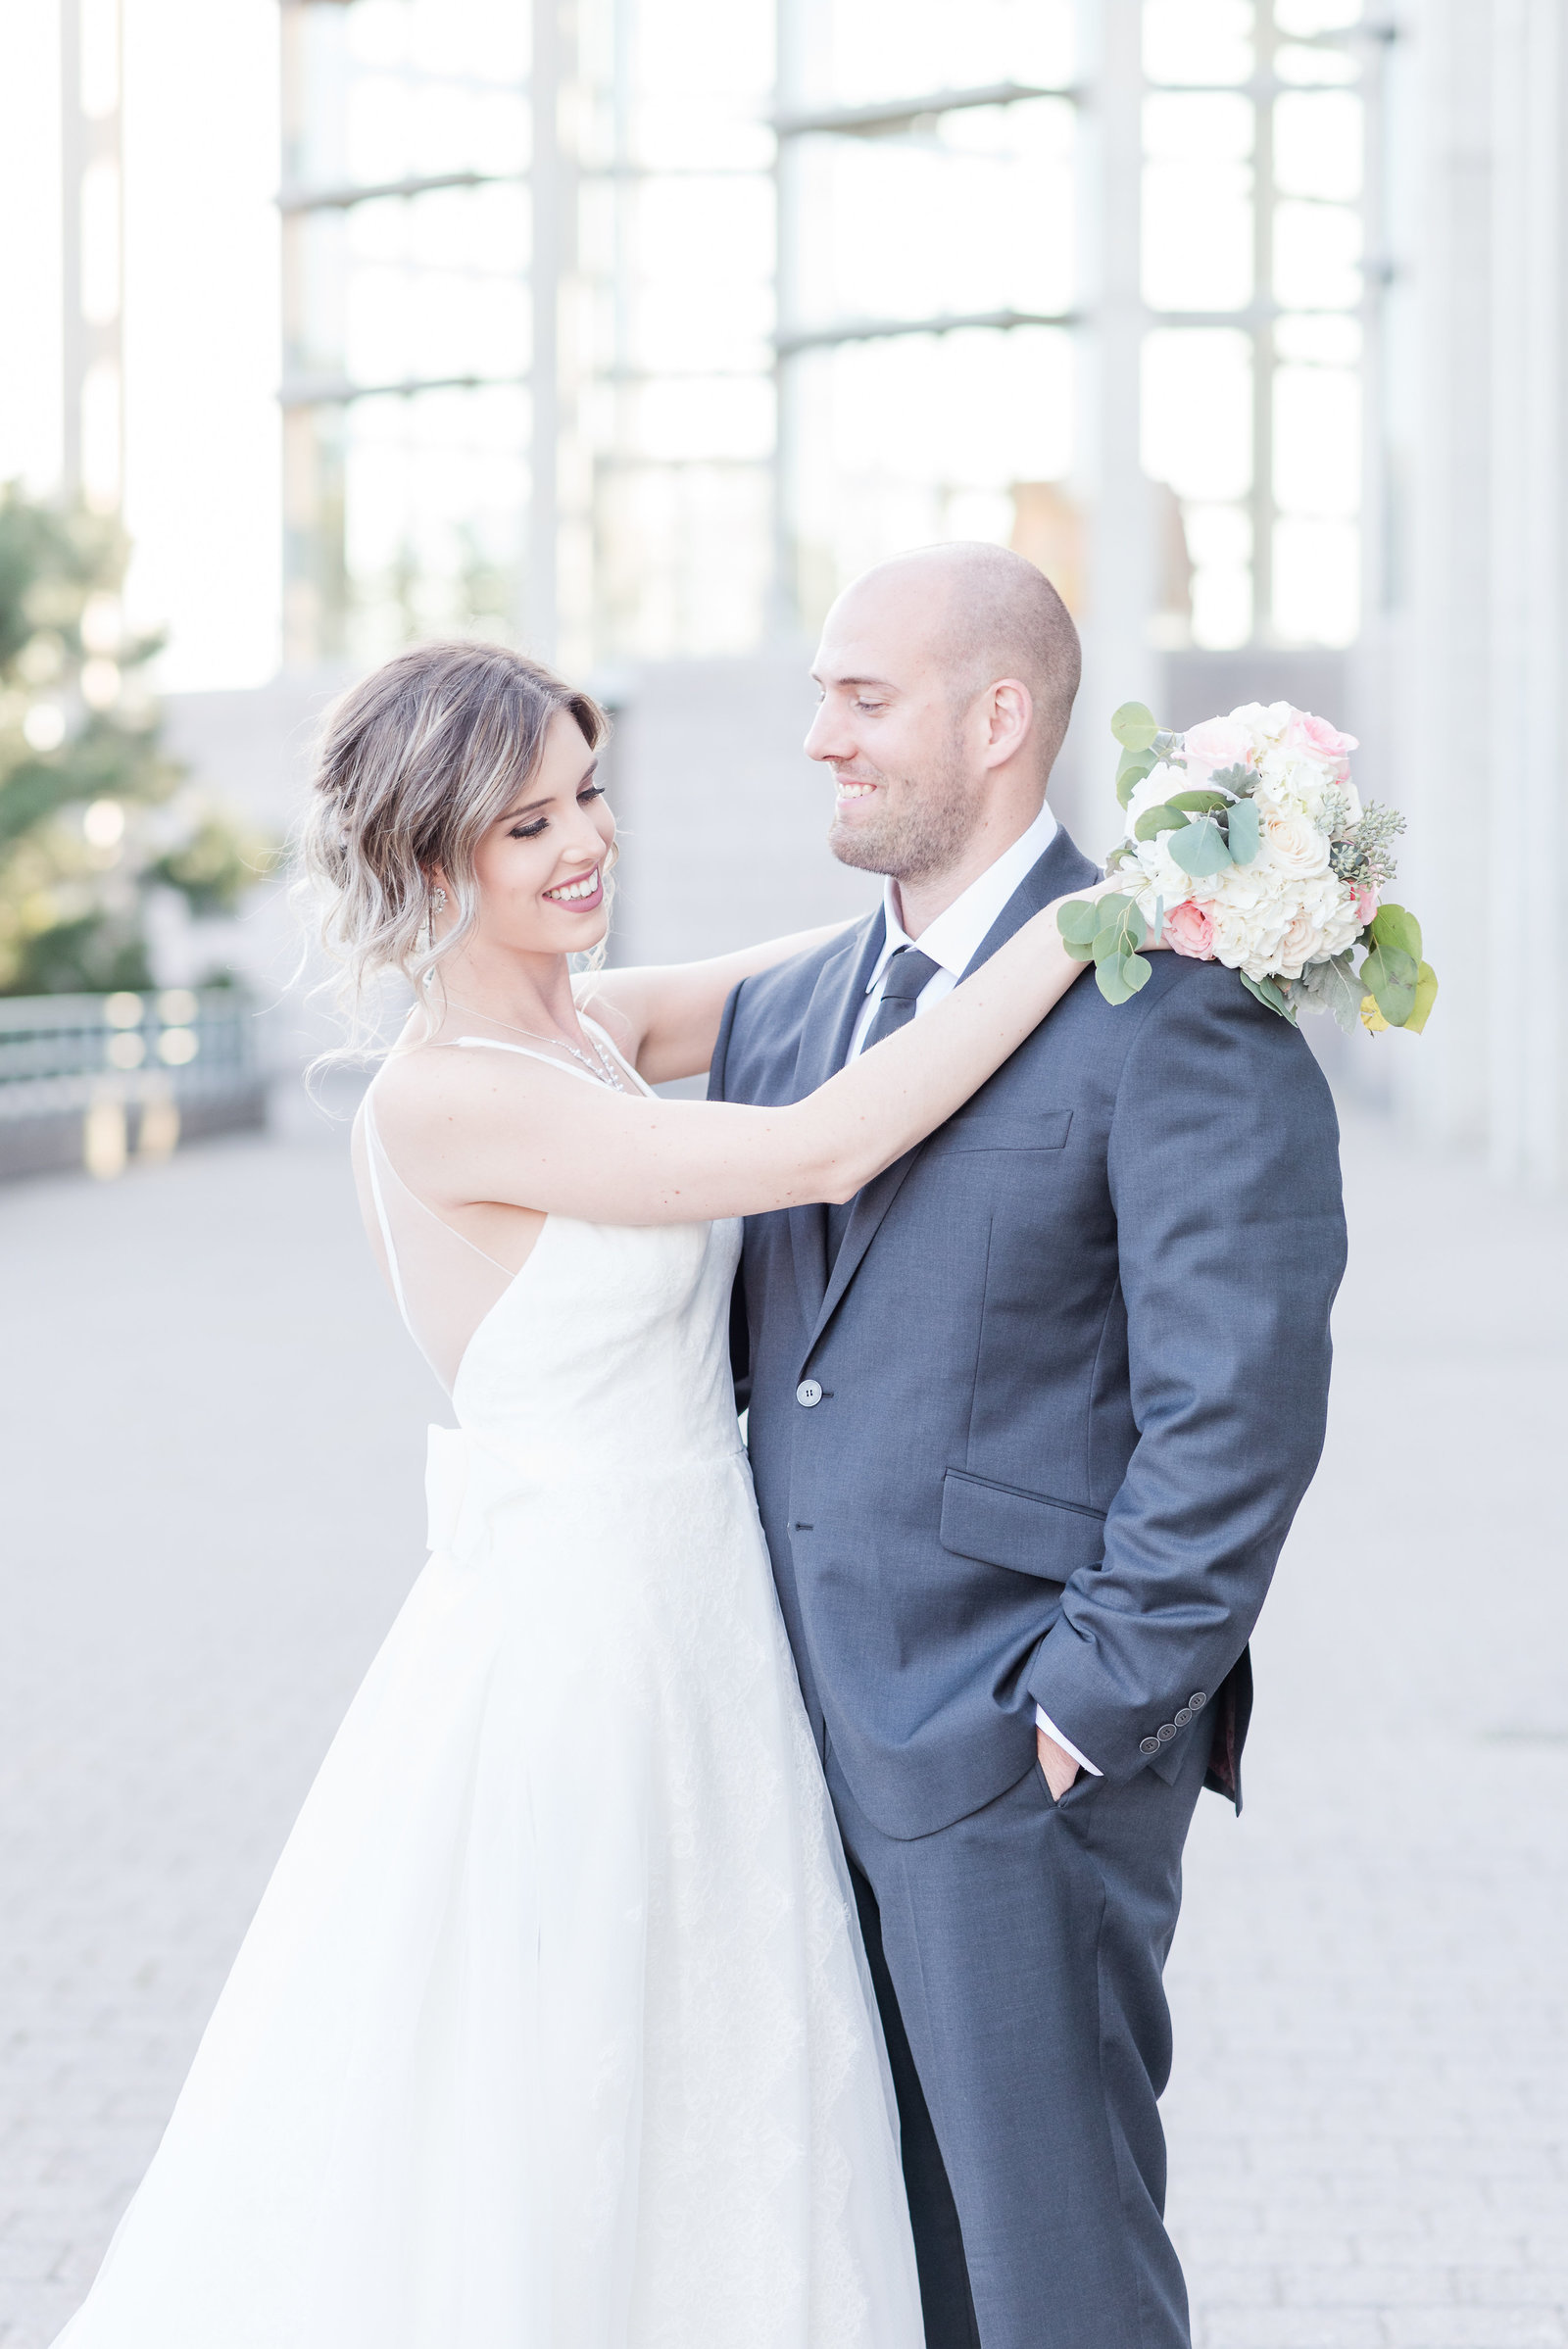 Luxe-Blush-Andaz-Wedding-Ottawa-Photos-Ottawa-180853